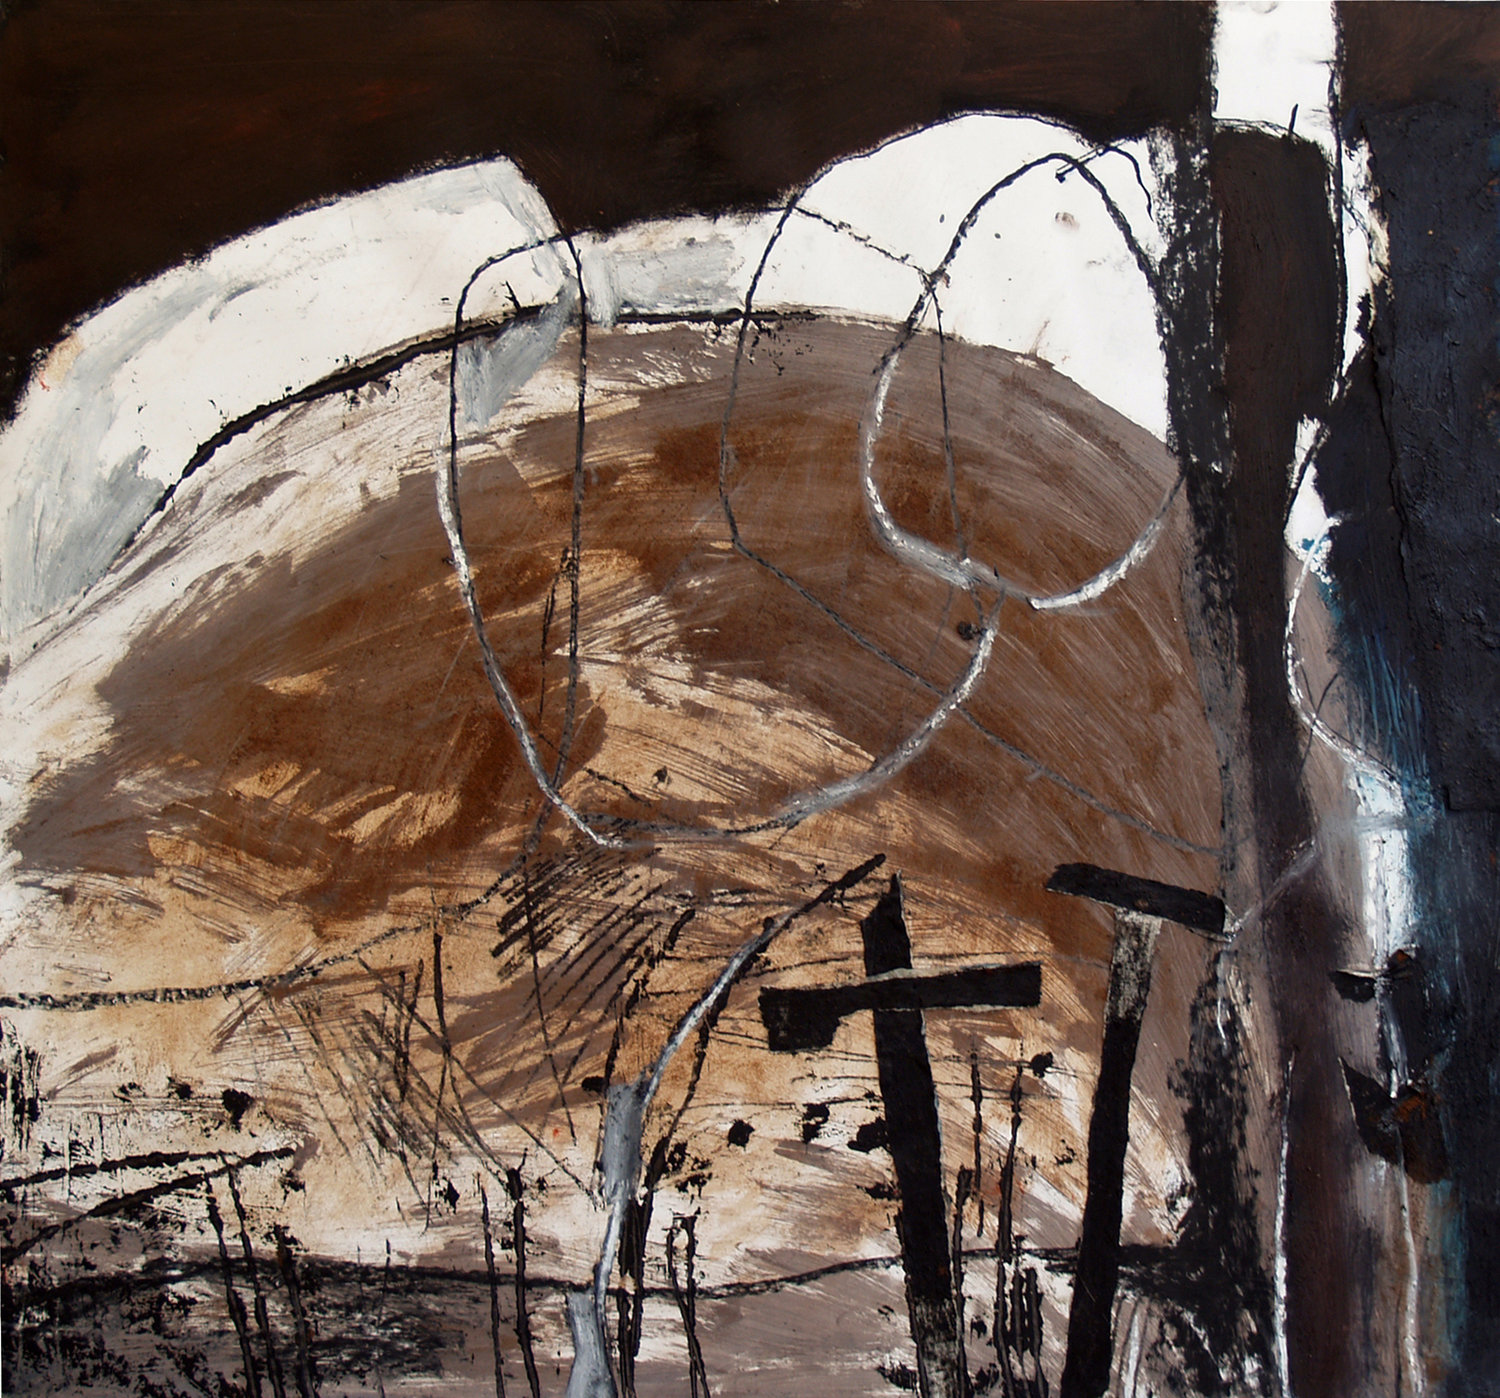 """After Fire  Selected for the  Royal Academy Summer Show 2015 , London, and the  Royal Ulster Academy 133rd Annual Exhibition 2014, Belfast. Mixed Media (oil paint, coffee grounds, charcoal, paper collage) on paper, 27"""" x 25"""" NFS"""